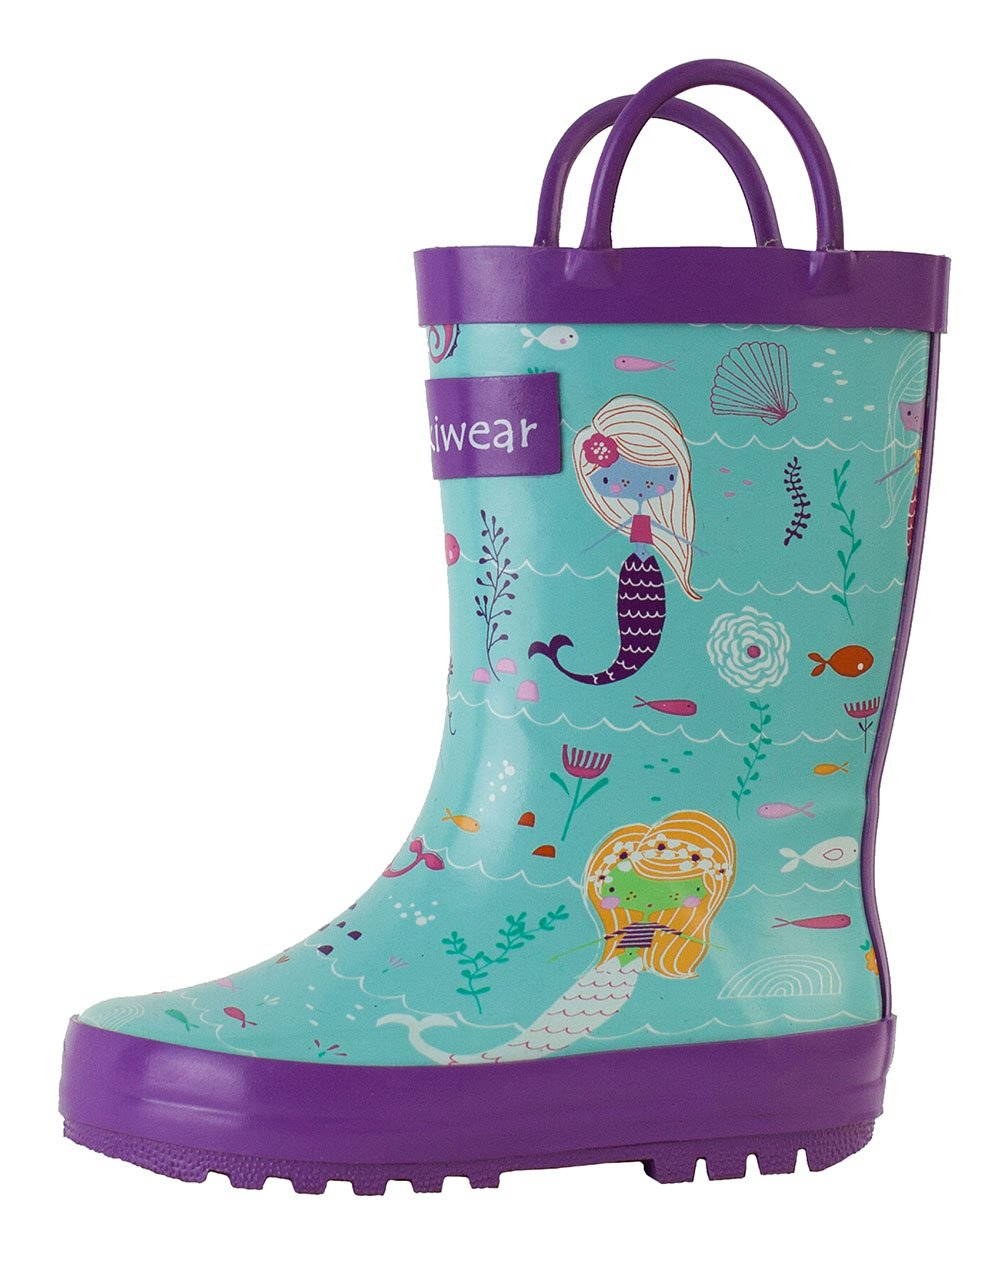 Oakiwear Kids Rubber Rain Boots with Easy-On Handles, Mermaids, 13T US Toddler